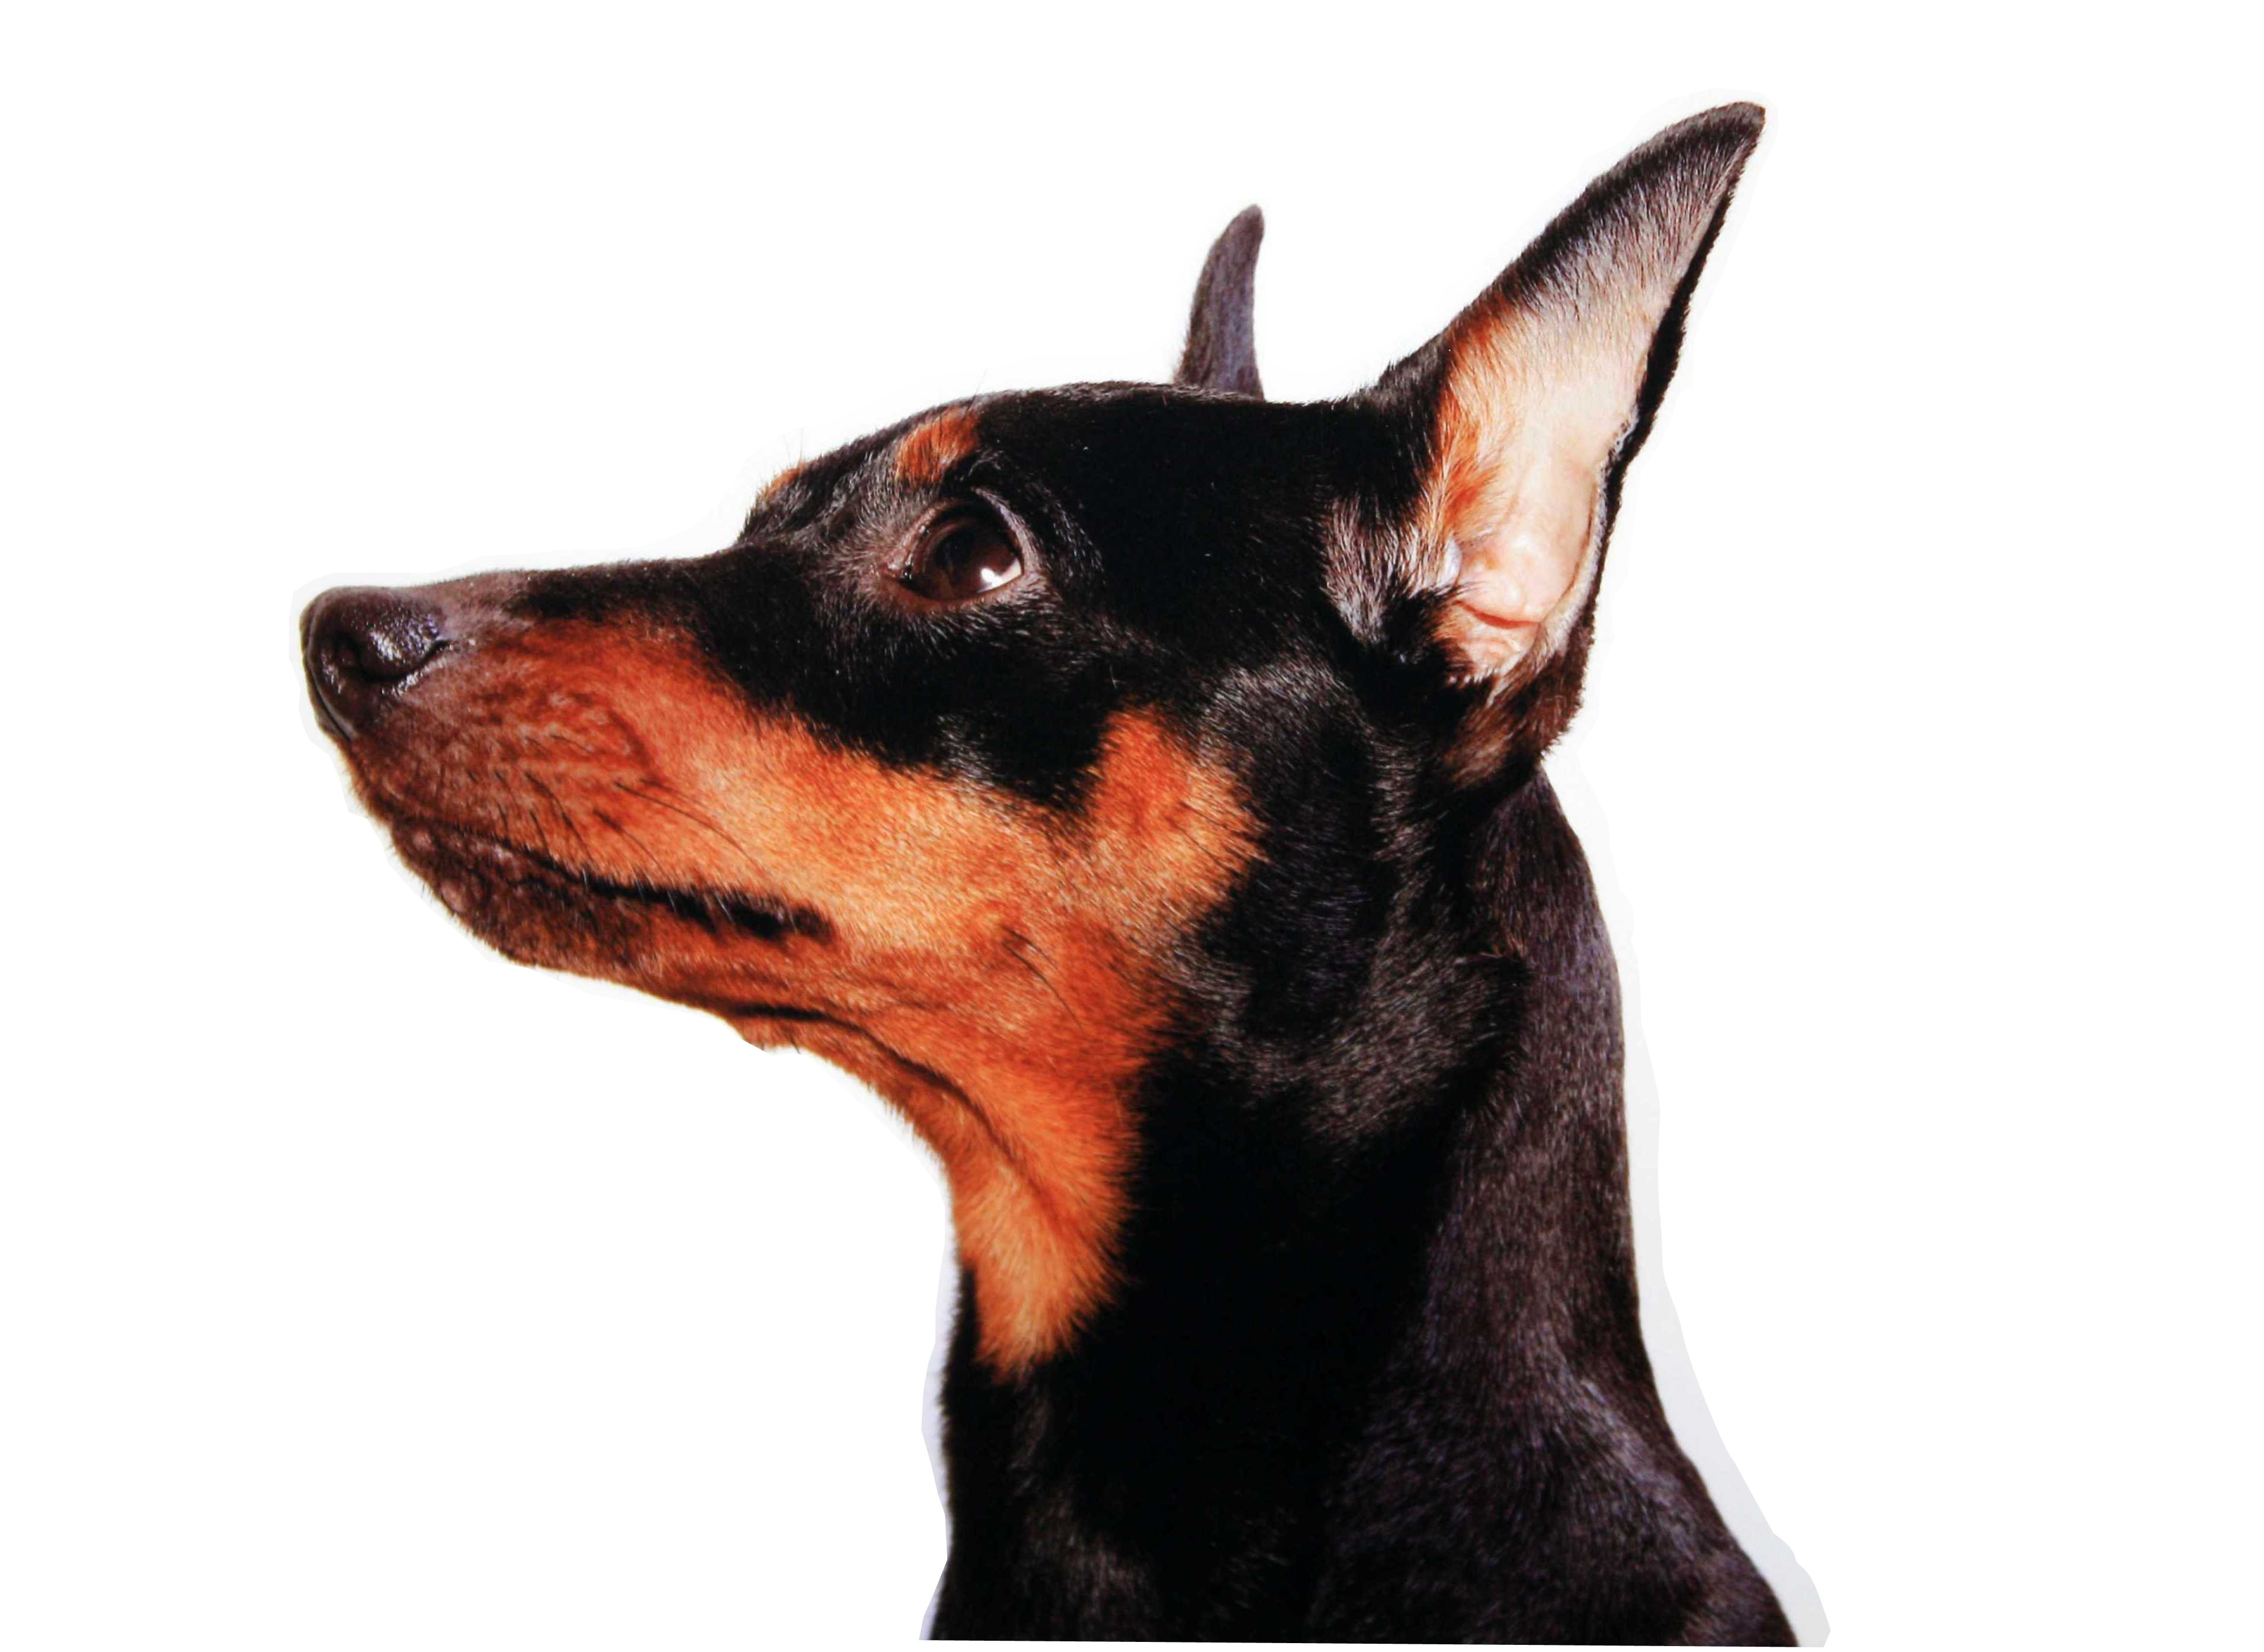 Miniature Pinscher face close up wallpapers and images 3822x2789